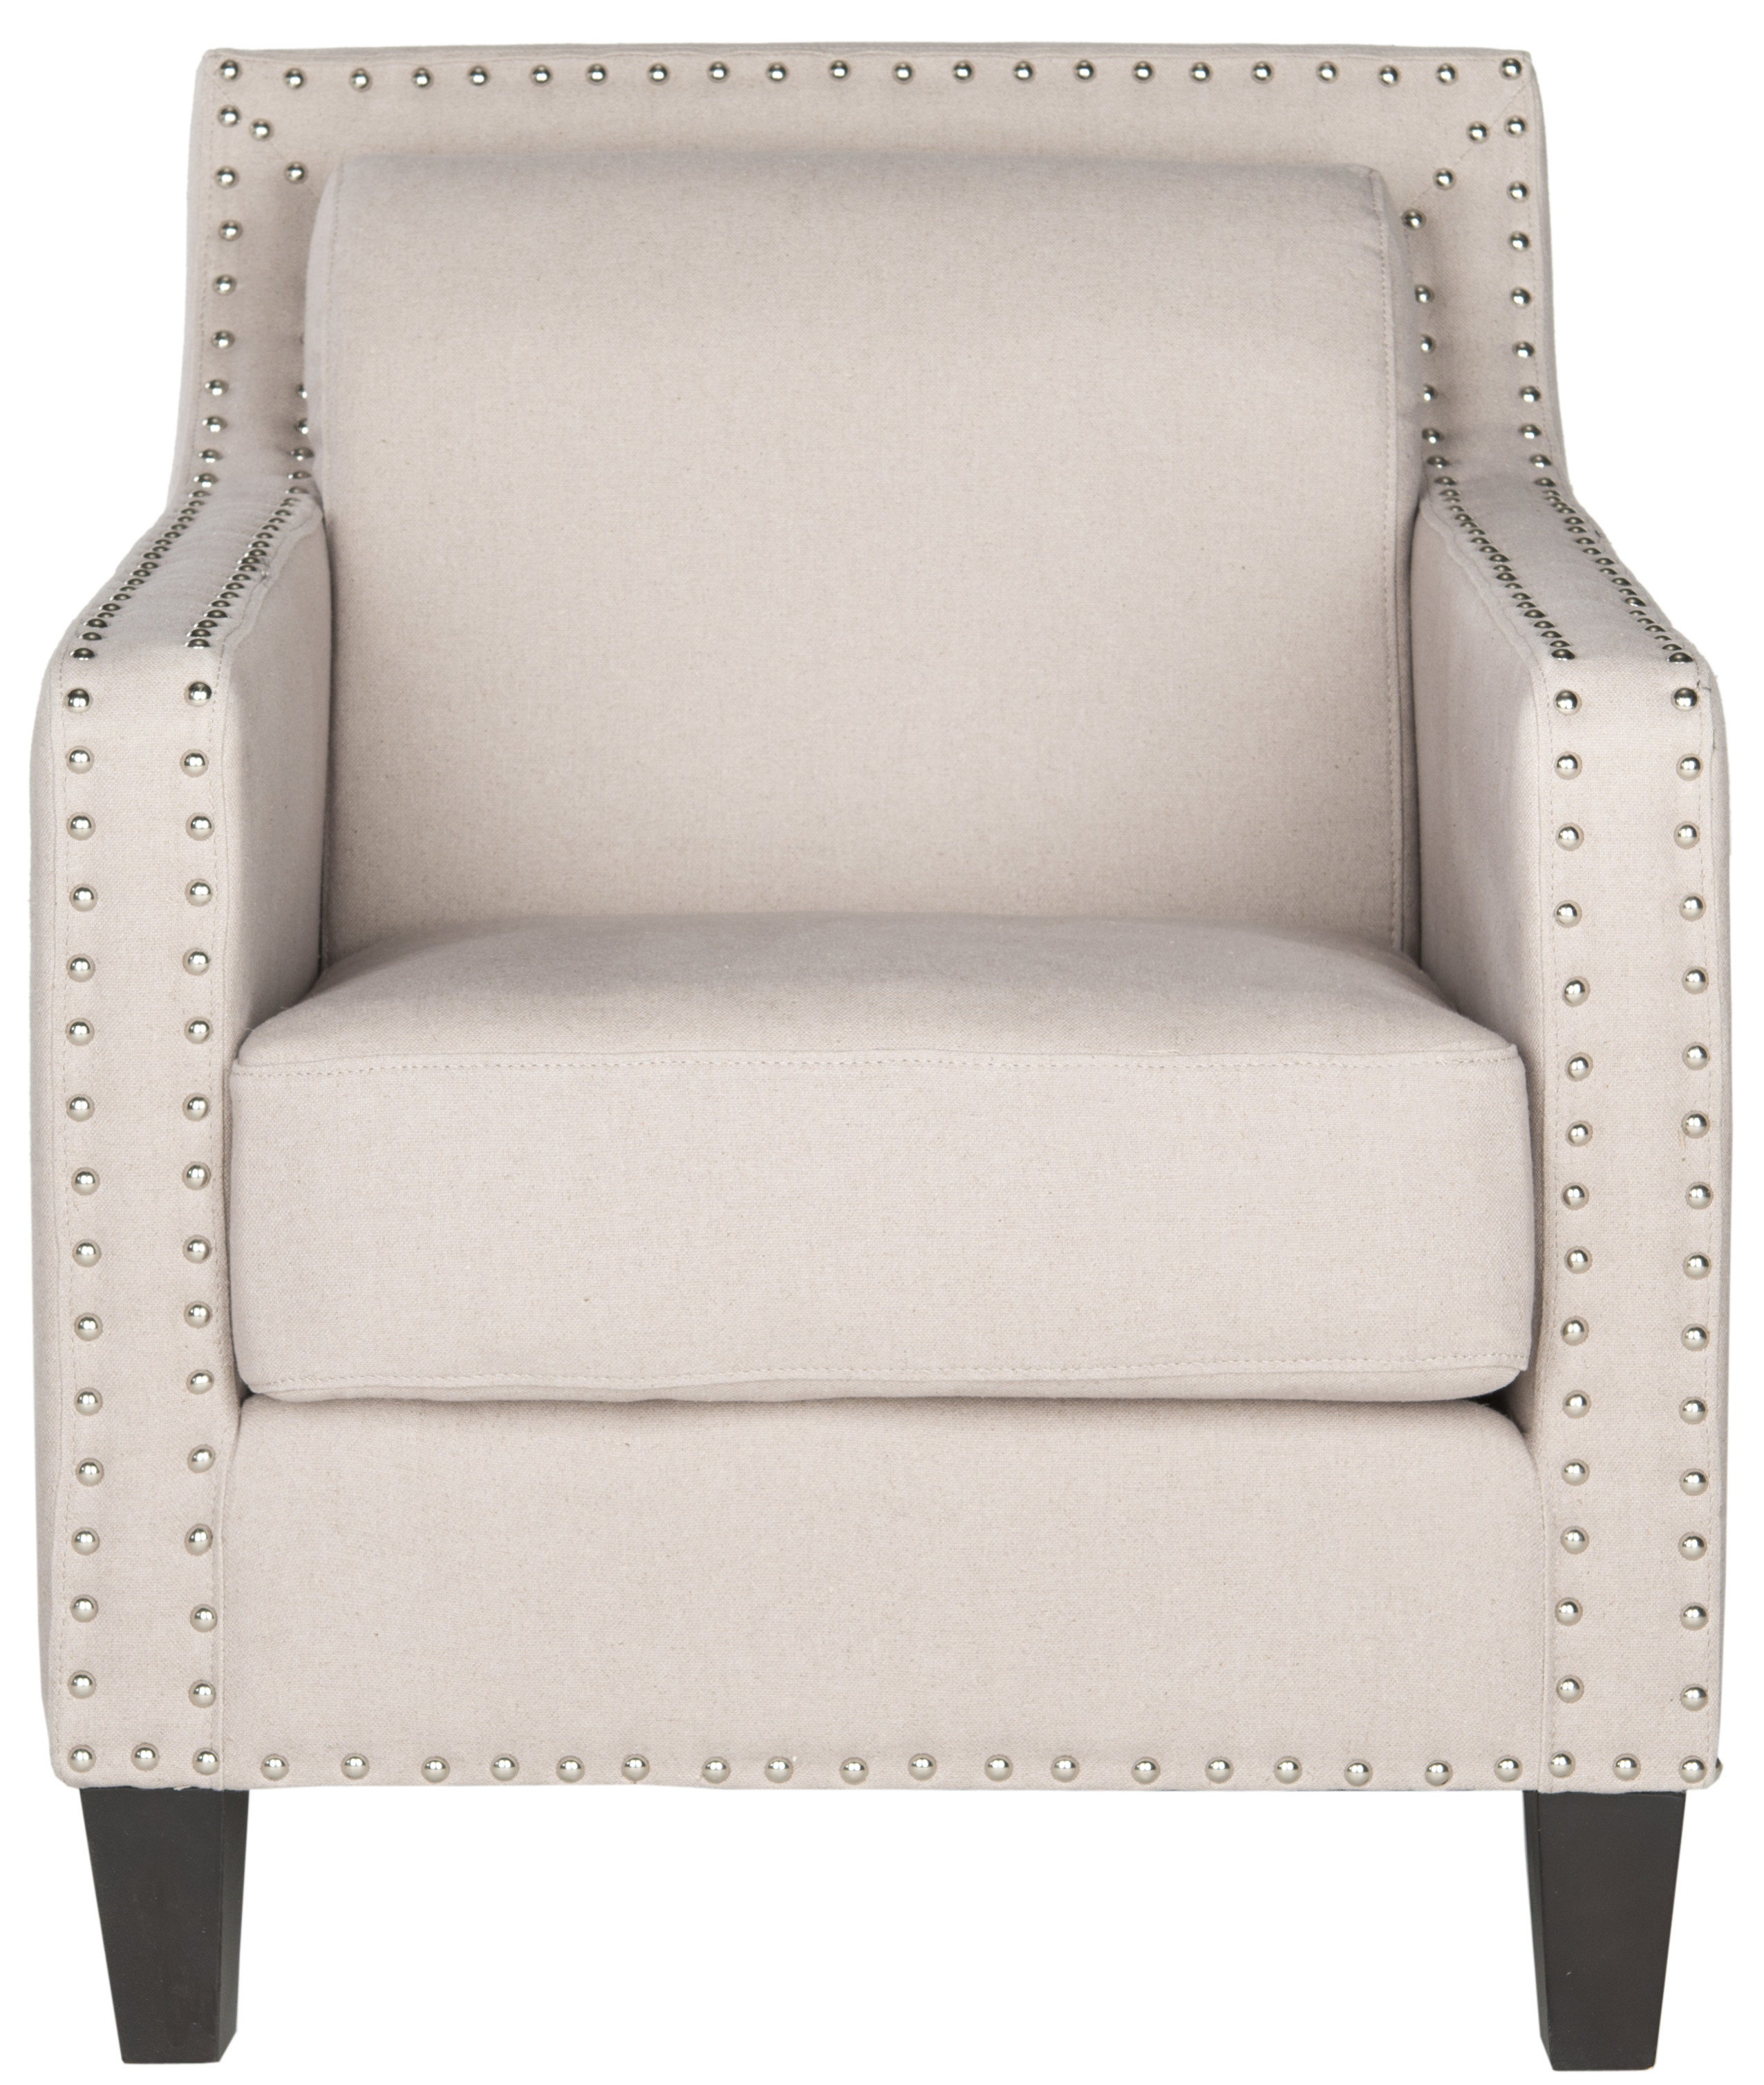 Wayfair Within Best And Newest Lucy Grey Sofa Chairs (View 18 of 20)